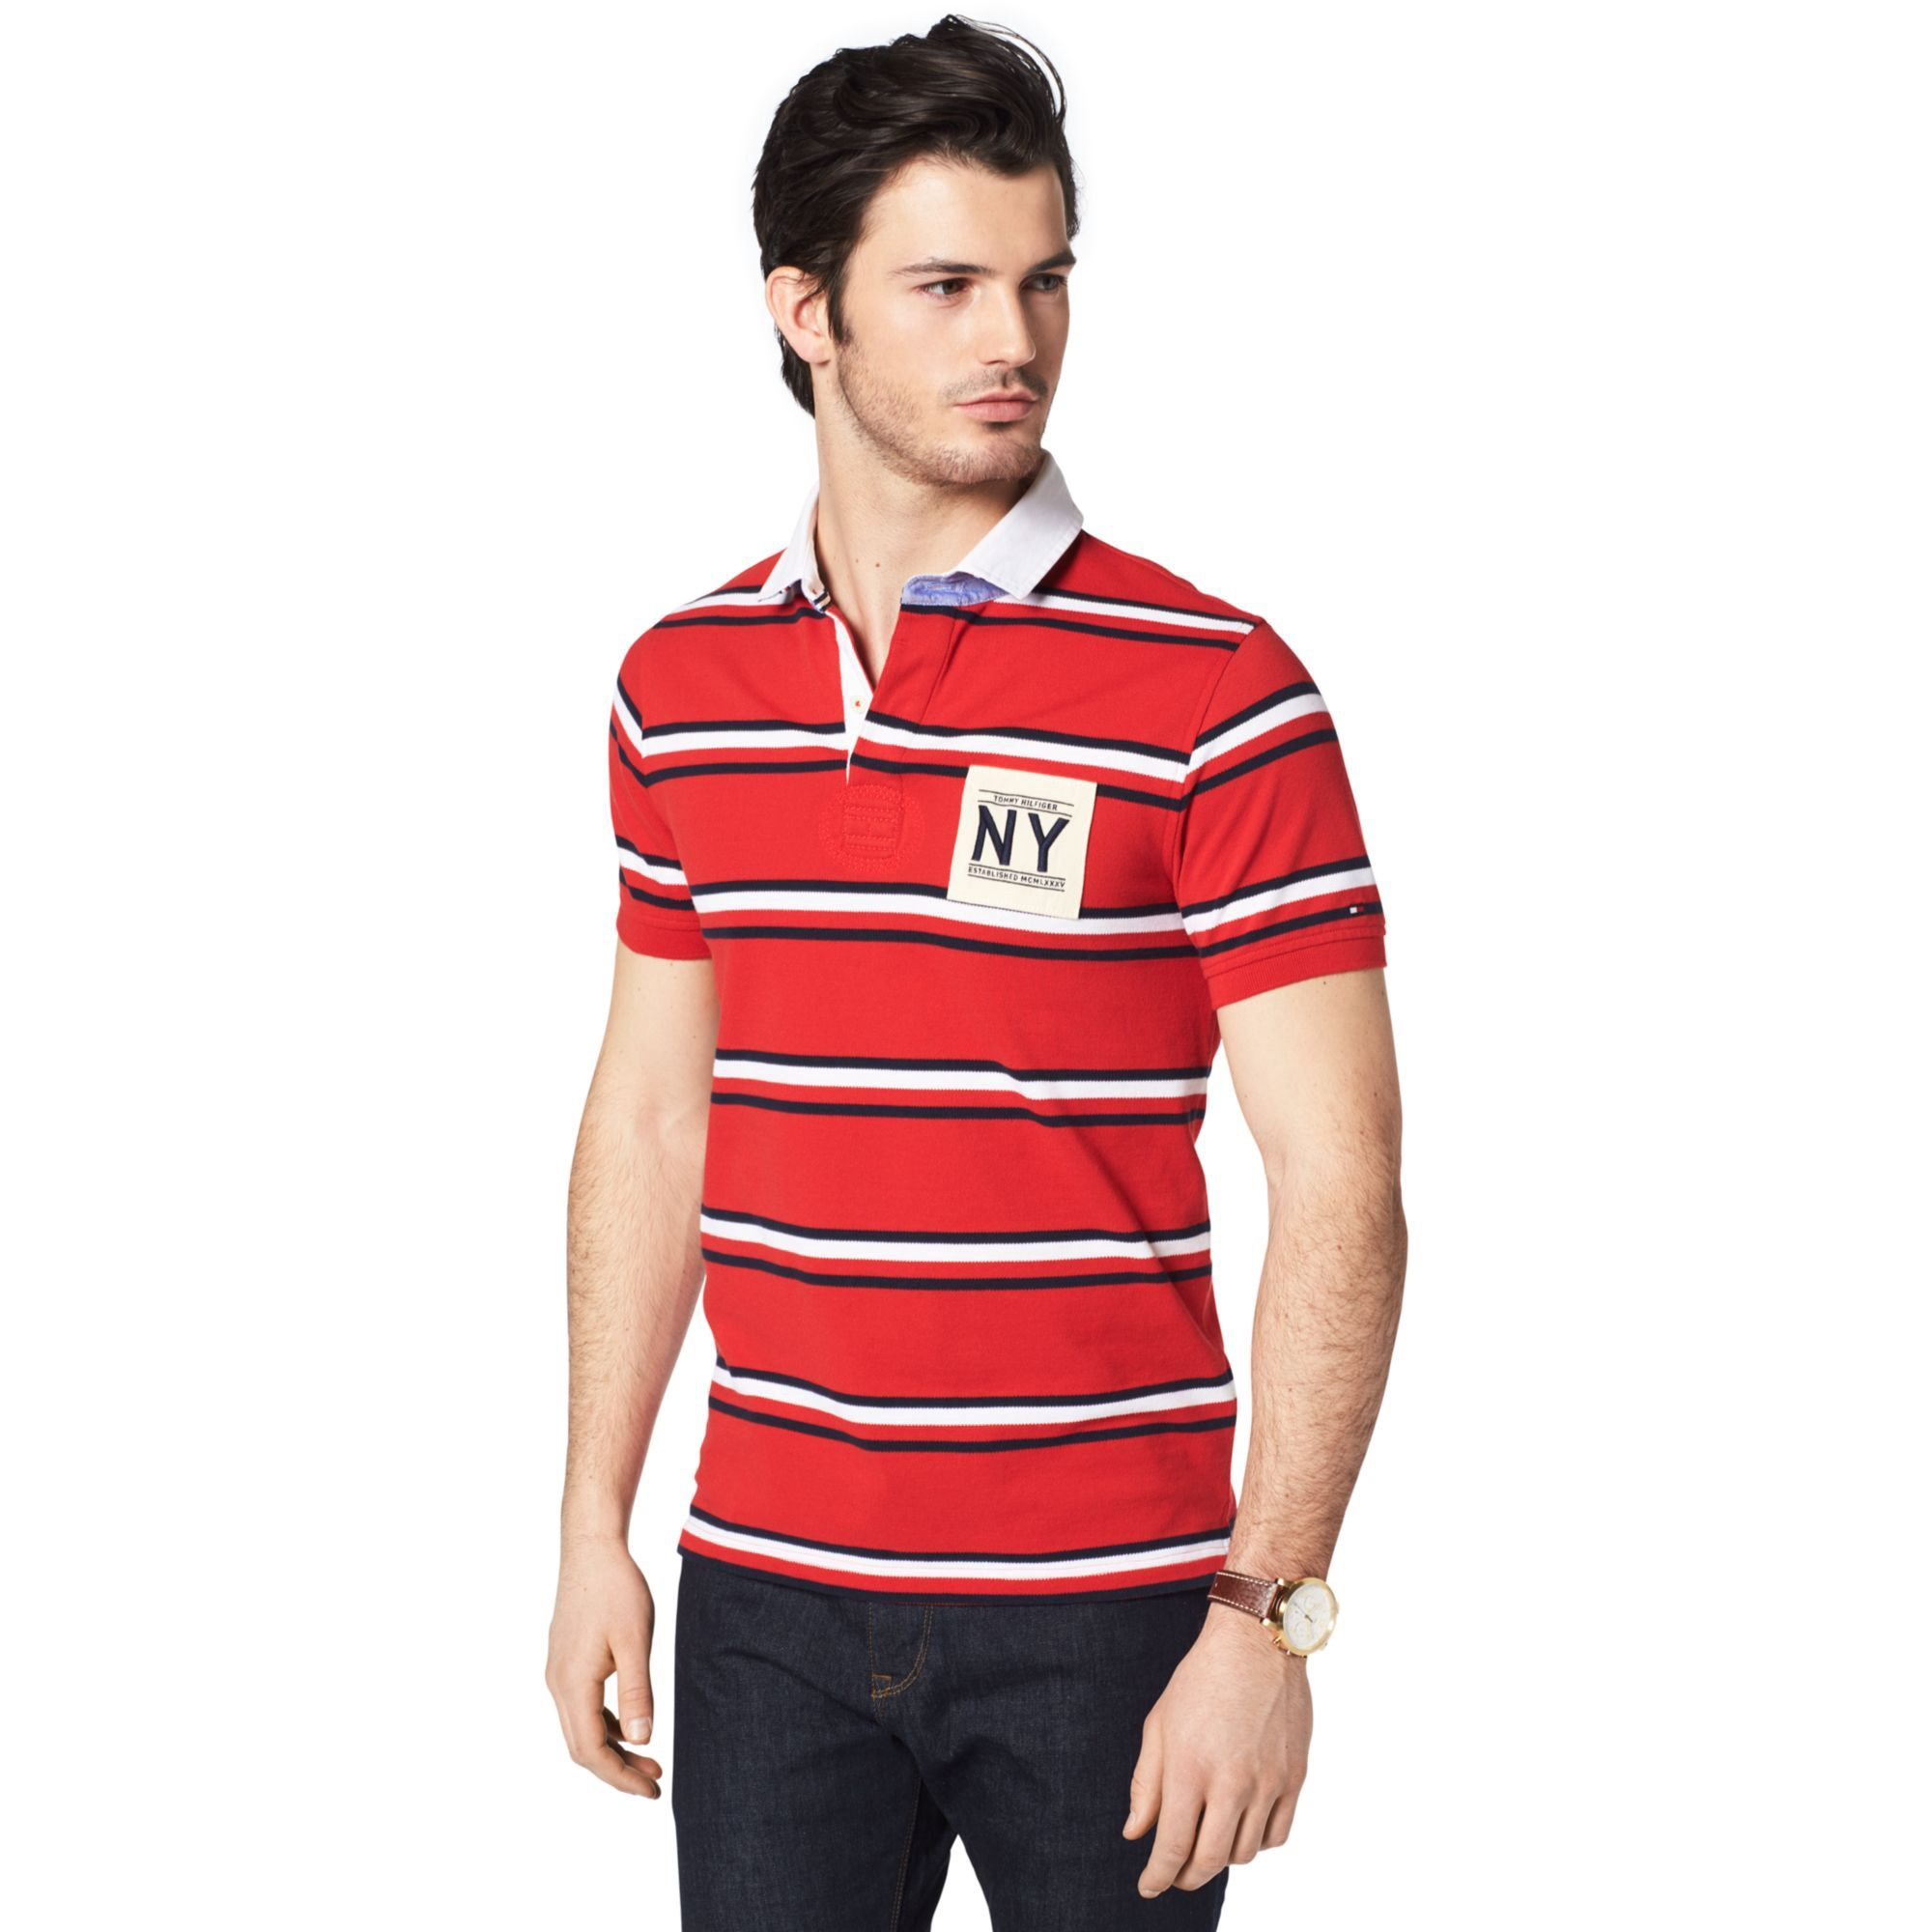 TOMMY HILFIGER SLIM FIT NY STRIPE POLO - MARS RED/ MIDNIGHT / CLASSIC WHITE. #tommyhilfiger #cloth #